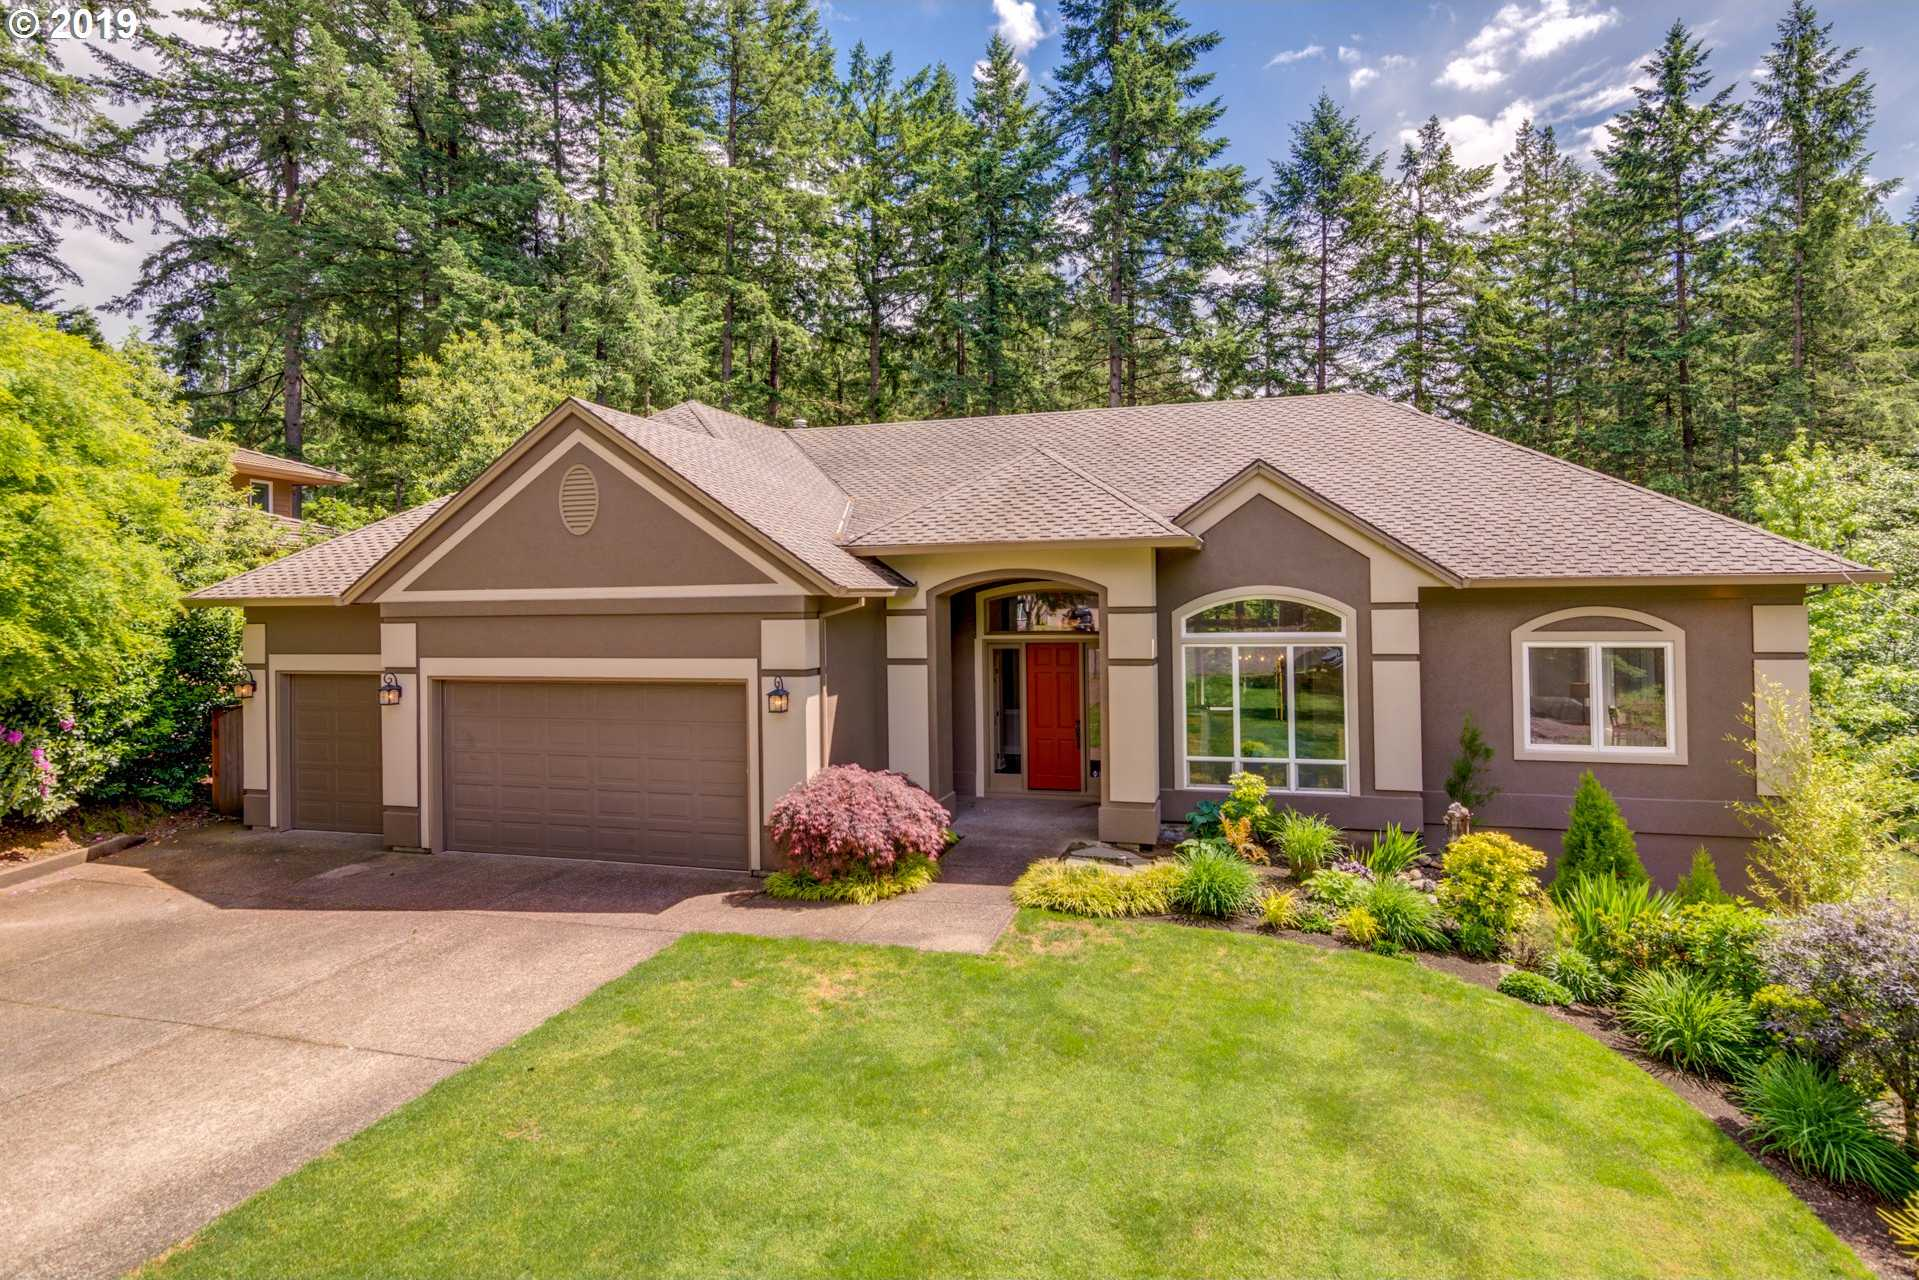 $857,000 - 4Br/3Ba -  for Sale in Victoria Woods, Tualatin